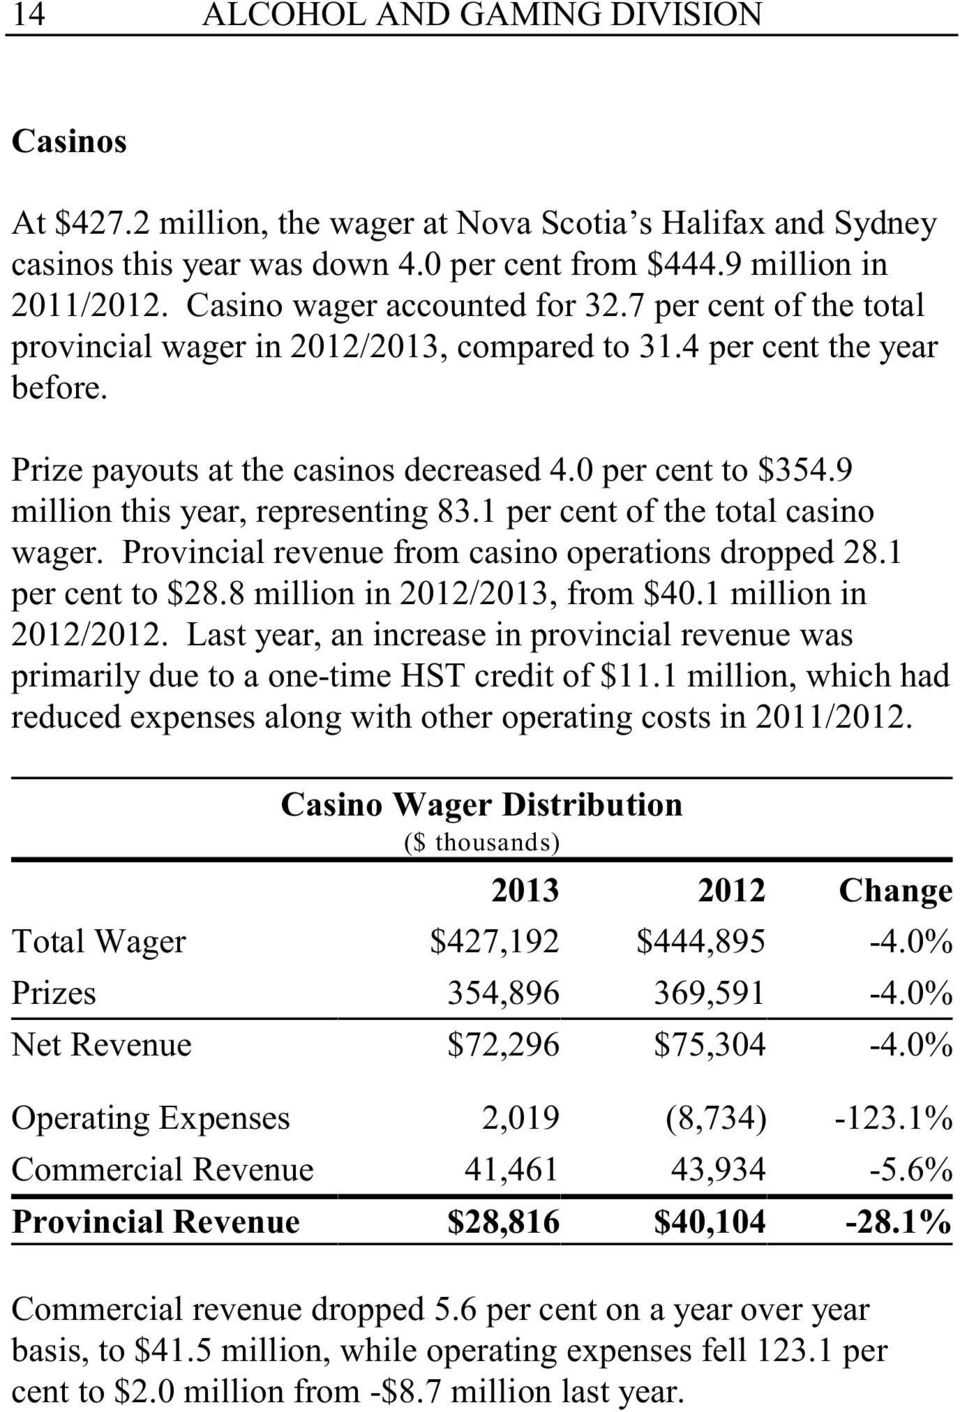 9 million this year, representing 83.1 per cent of the total casino wager. Provincial revenue from casino operations dropped 28.1 per cent to $28.8 million in 2012/2013, from $40.